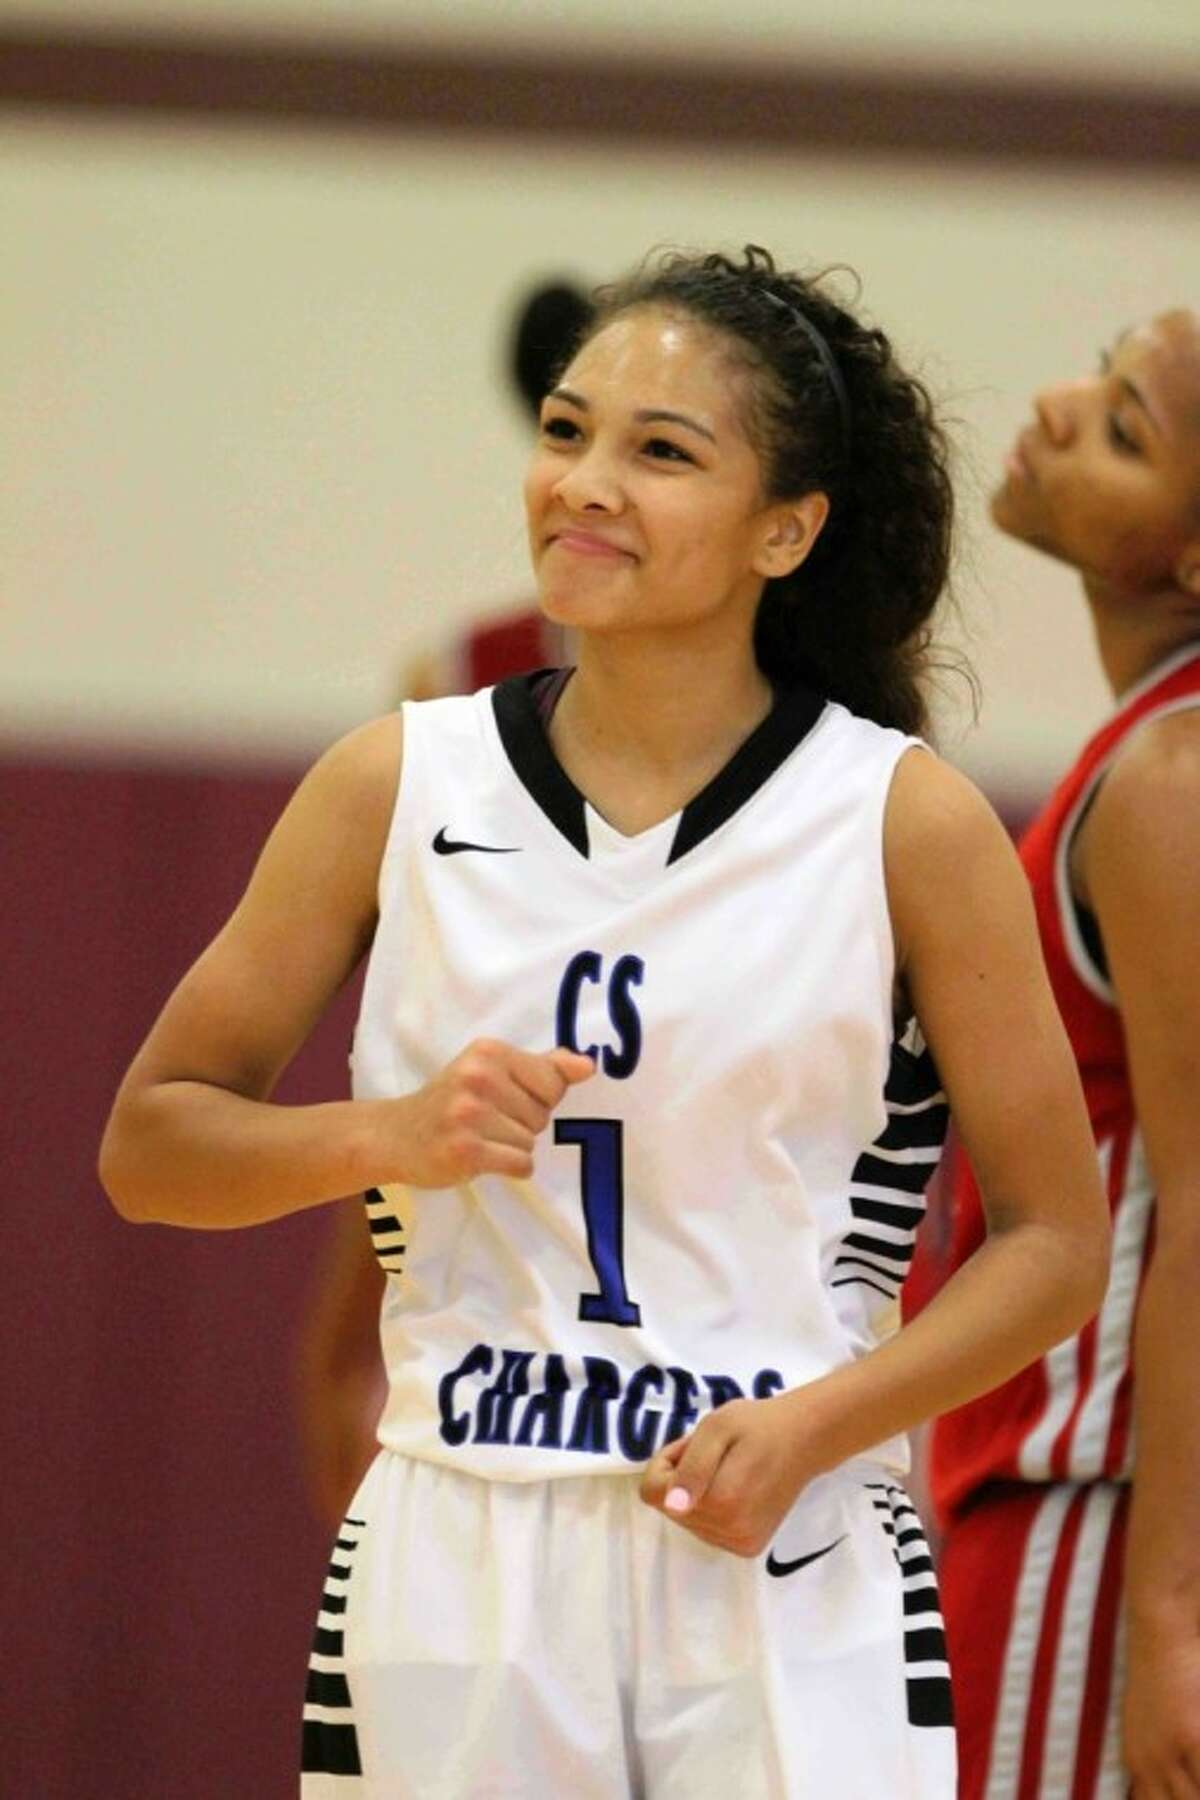 Clear Springs junior guard Brooke McCarty and her Lady Charger teammates will be among the favorites at the 55th annual Peggy Whitley Classic that begins Thursday at Clear Creek High School.